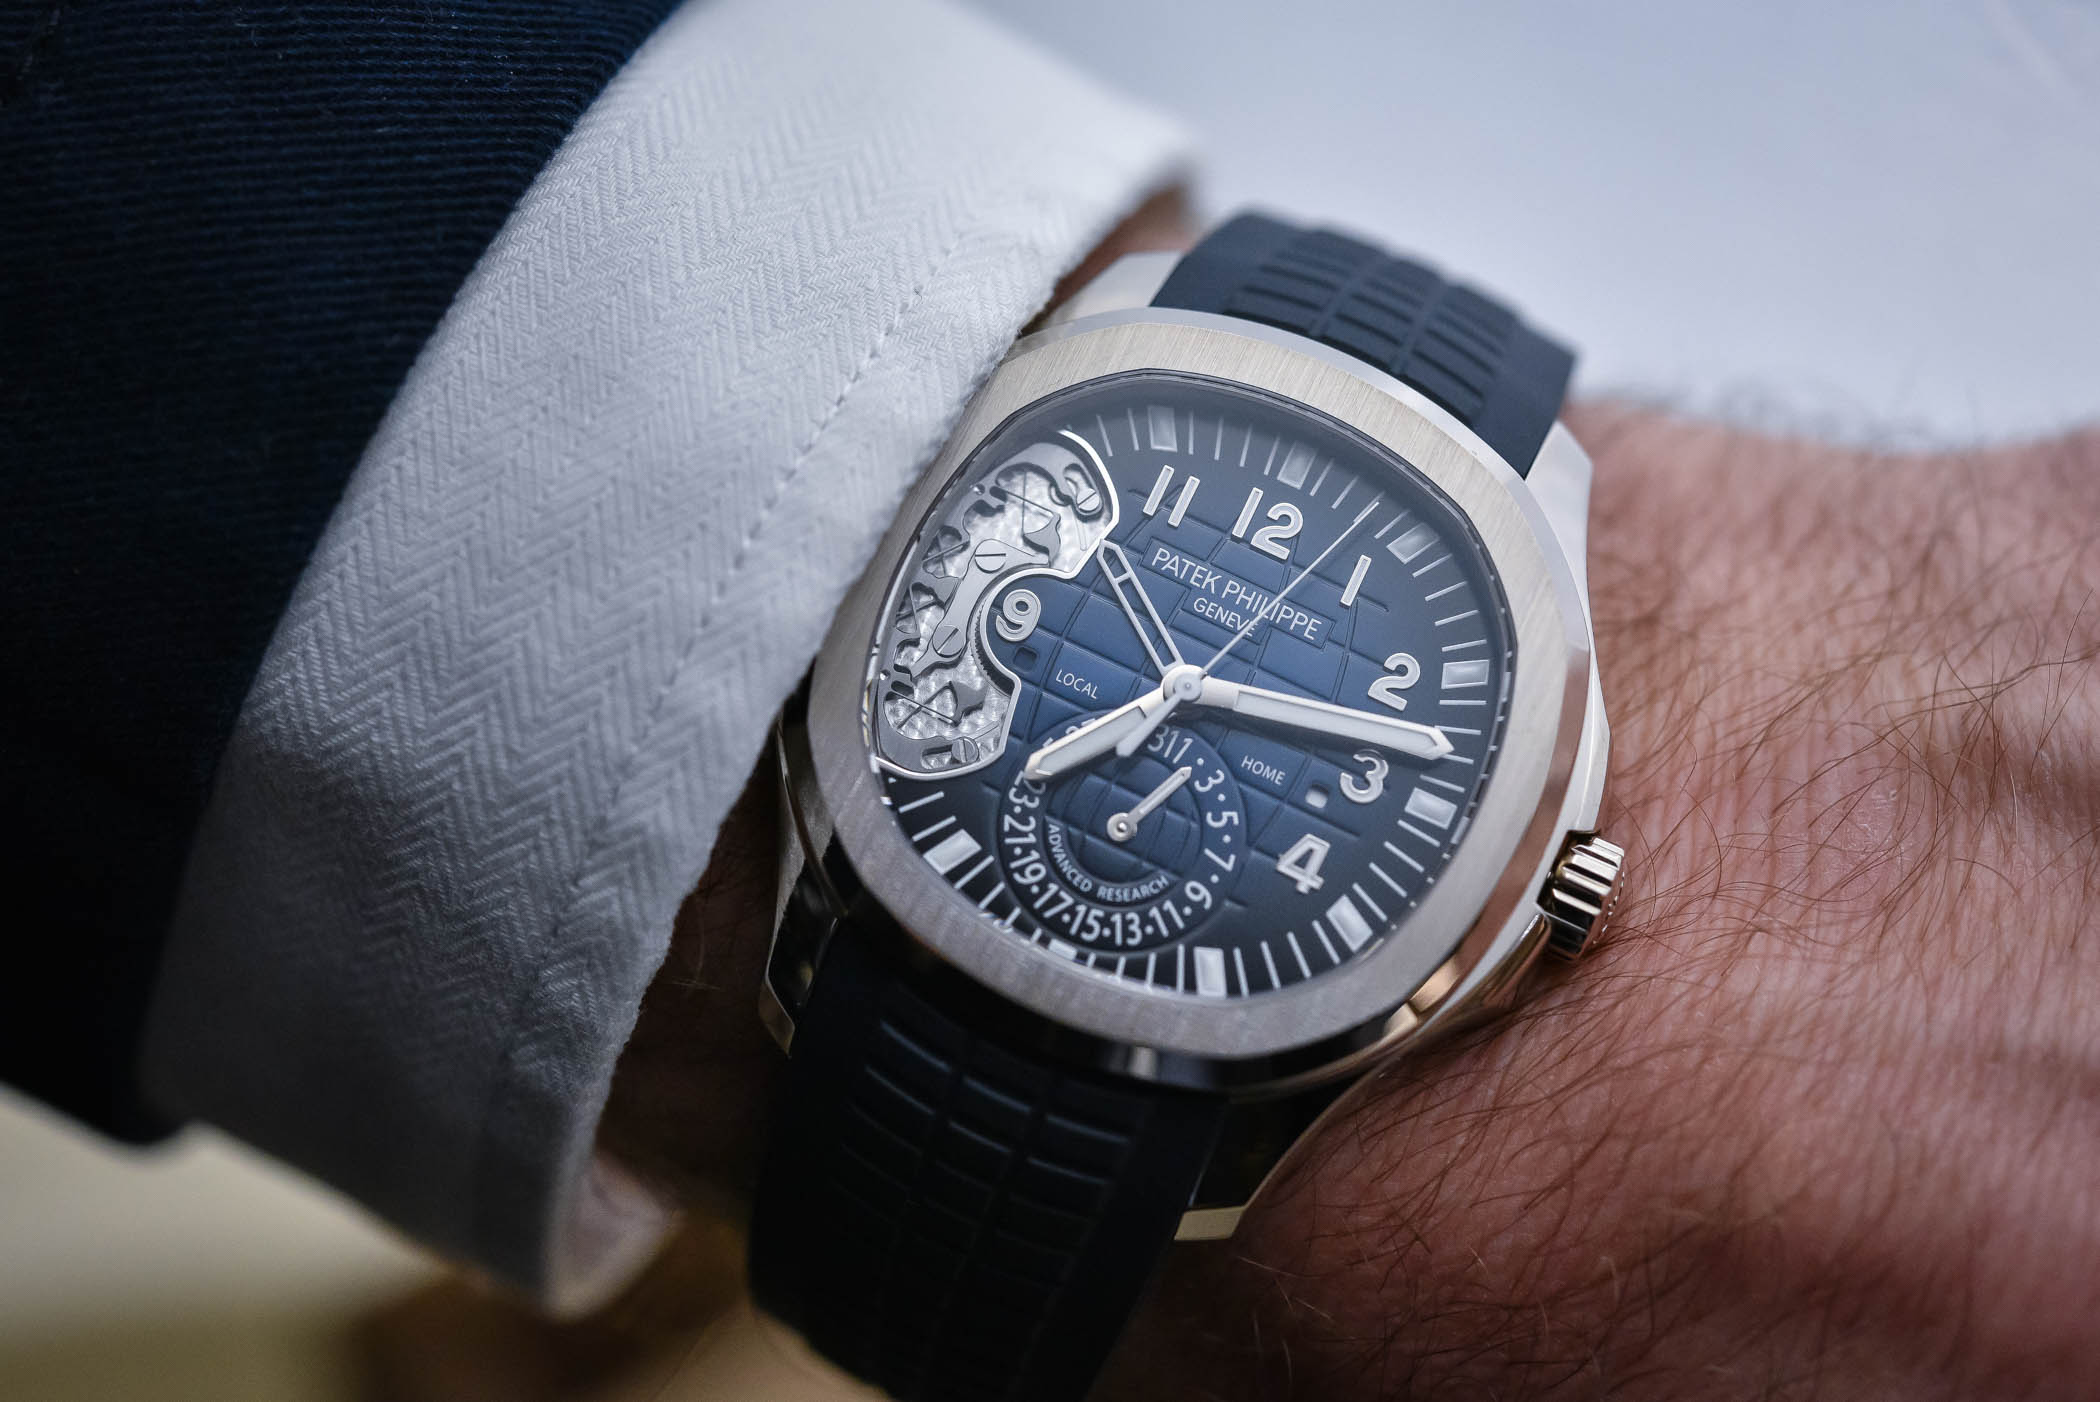 Patek Philippe Advanced Research Aquanaut Travel Time Ref 5650g